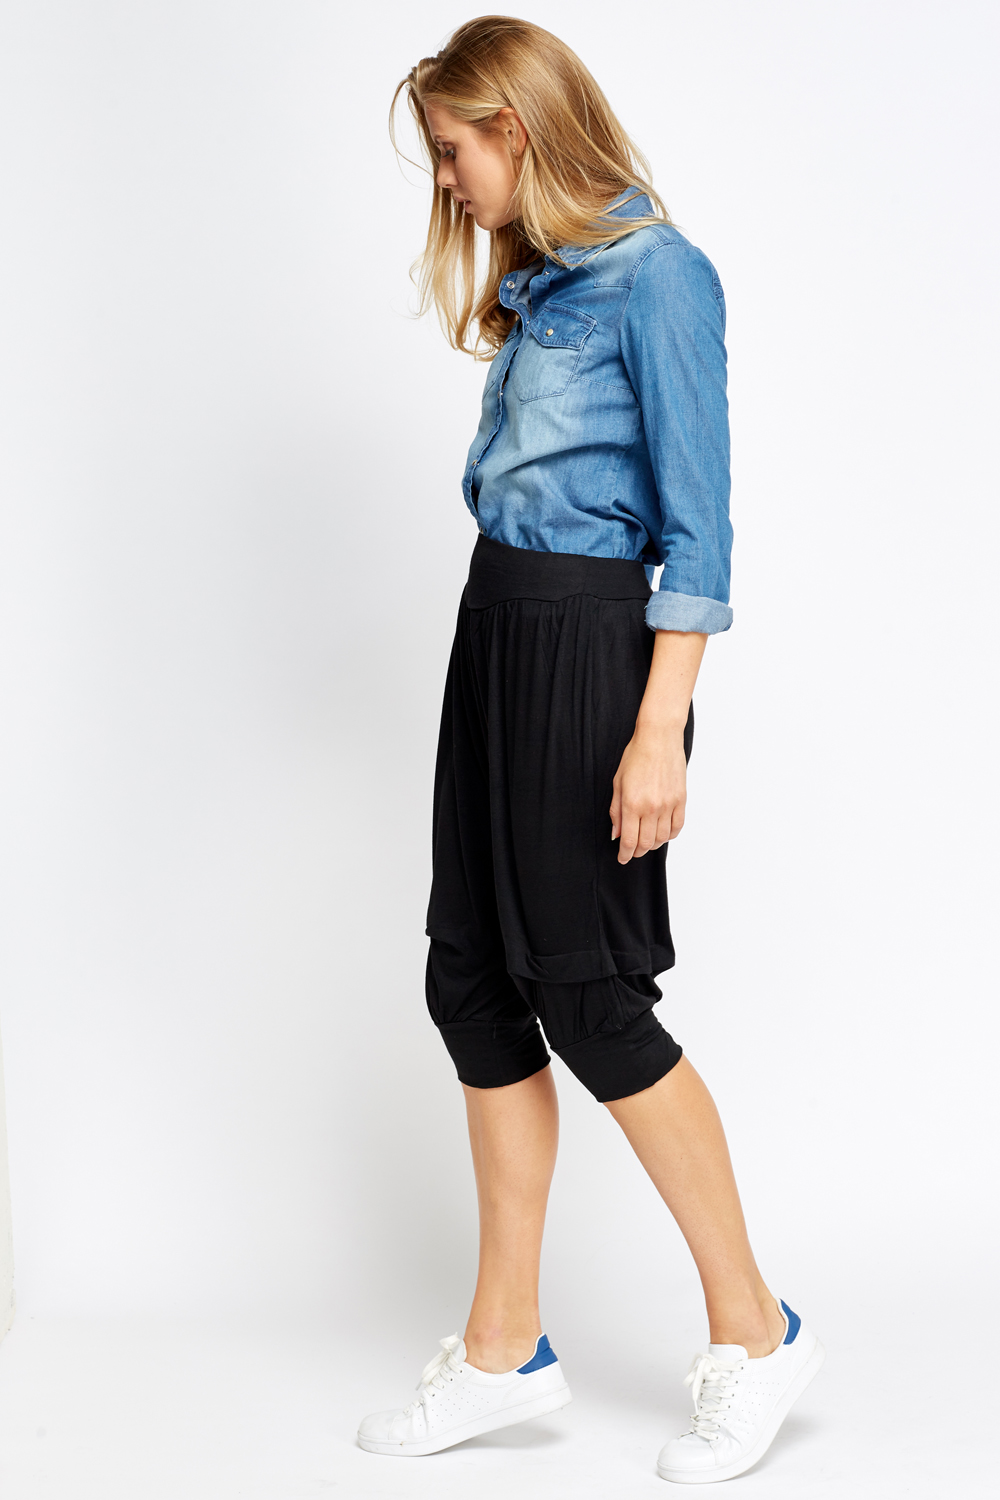 Buy the latest cropped harem pants cheap shop fashion style with free shipping, and check out our daily updated new arrival cropped harem pants at smileqbl.gq